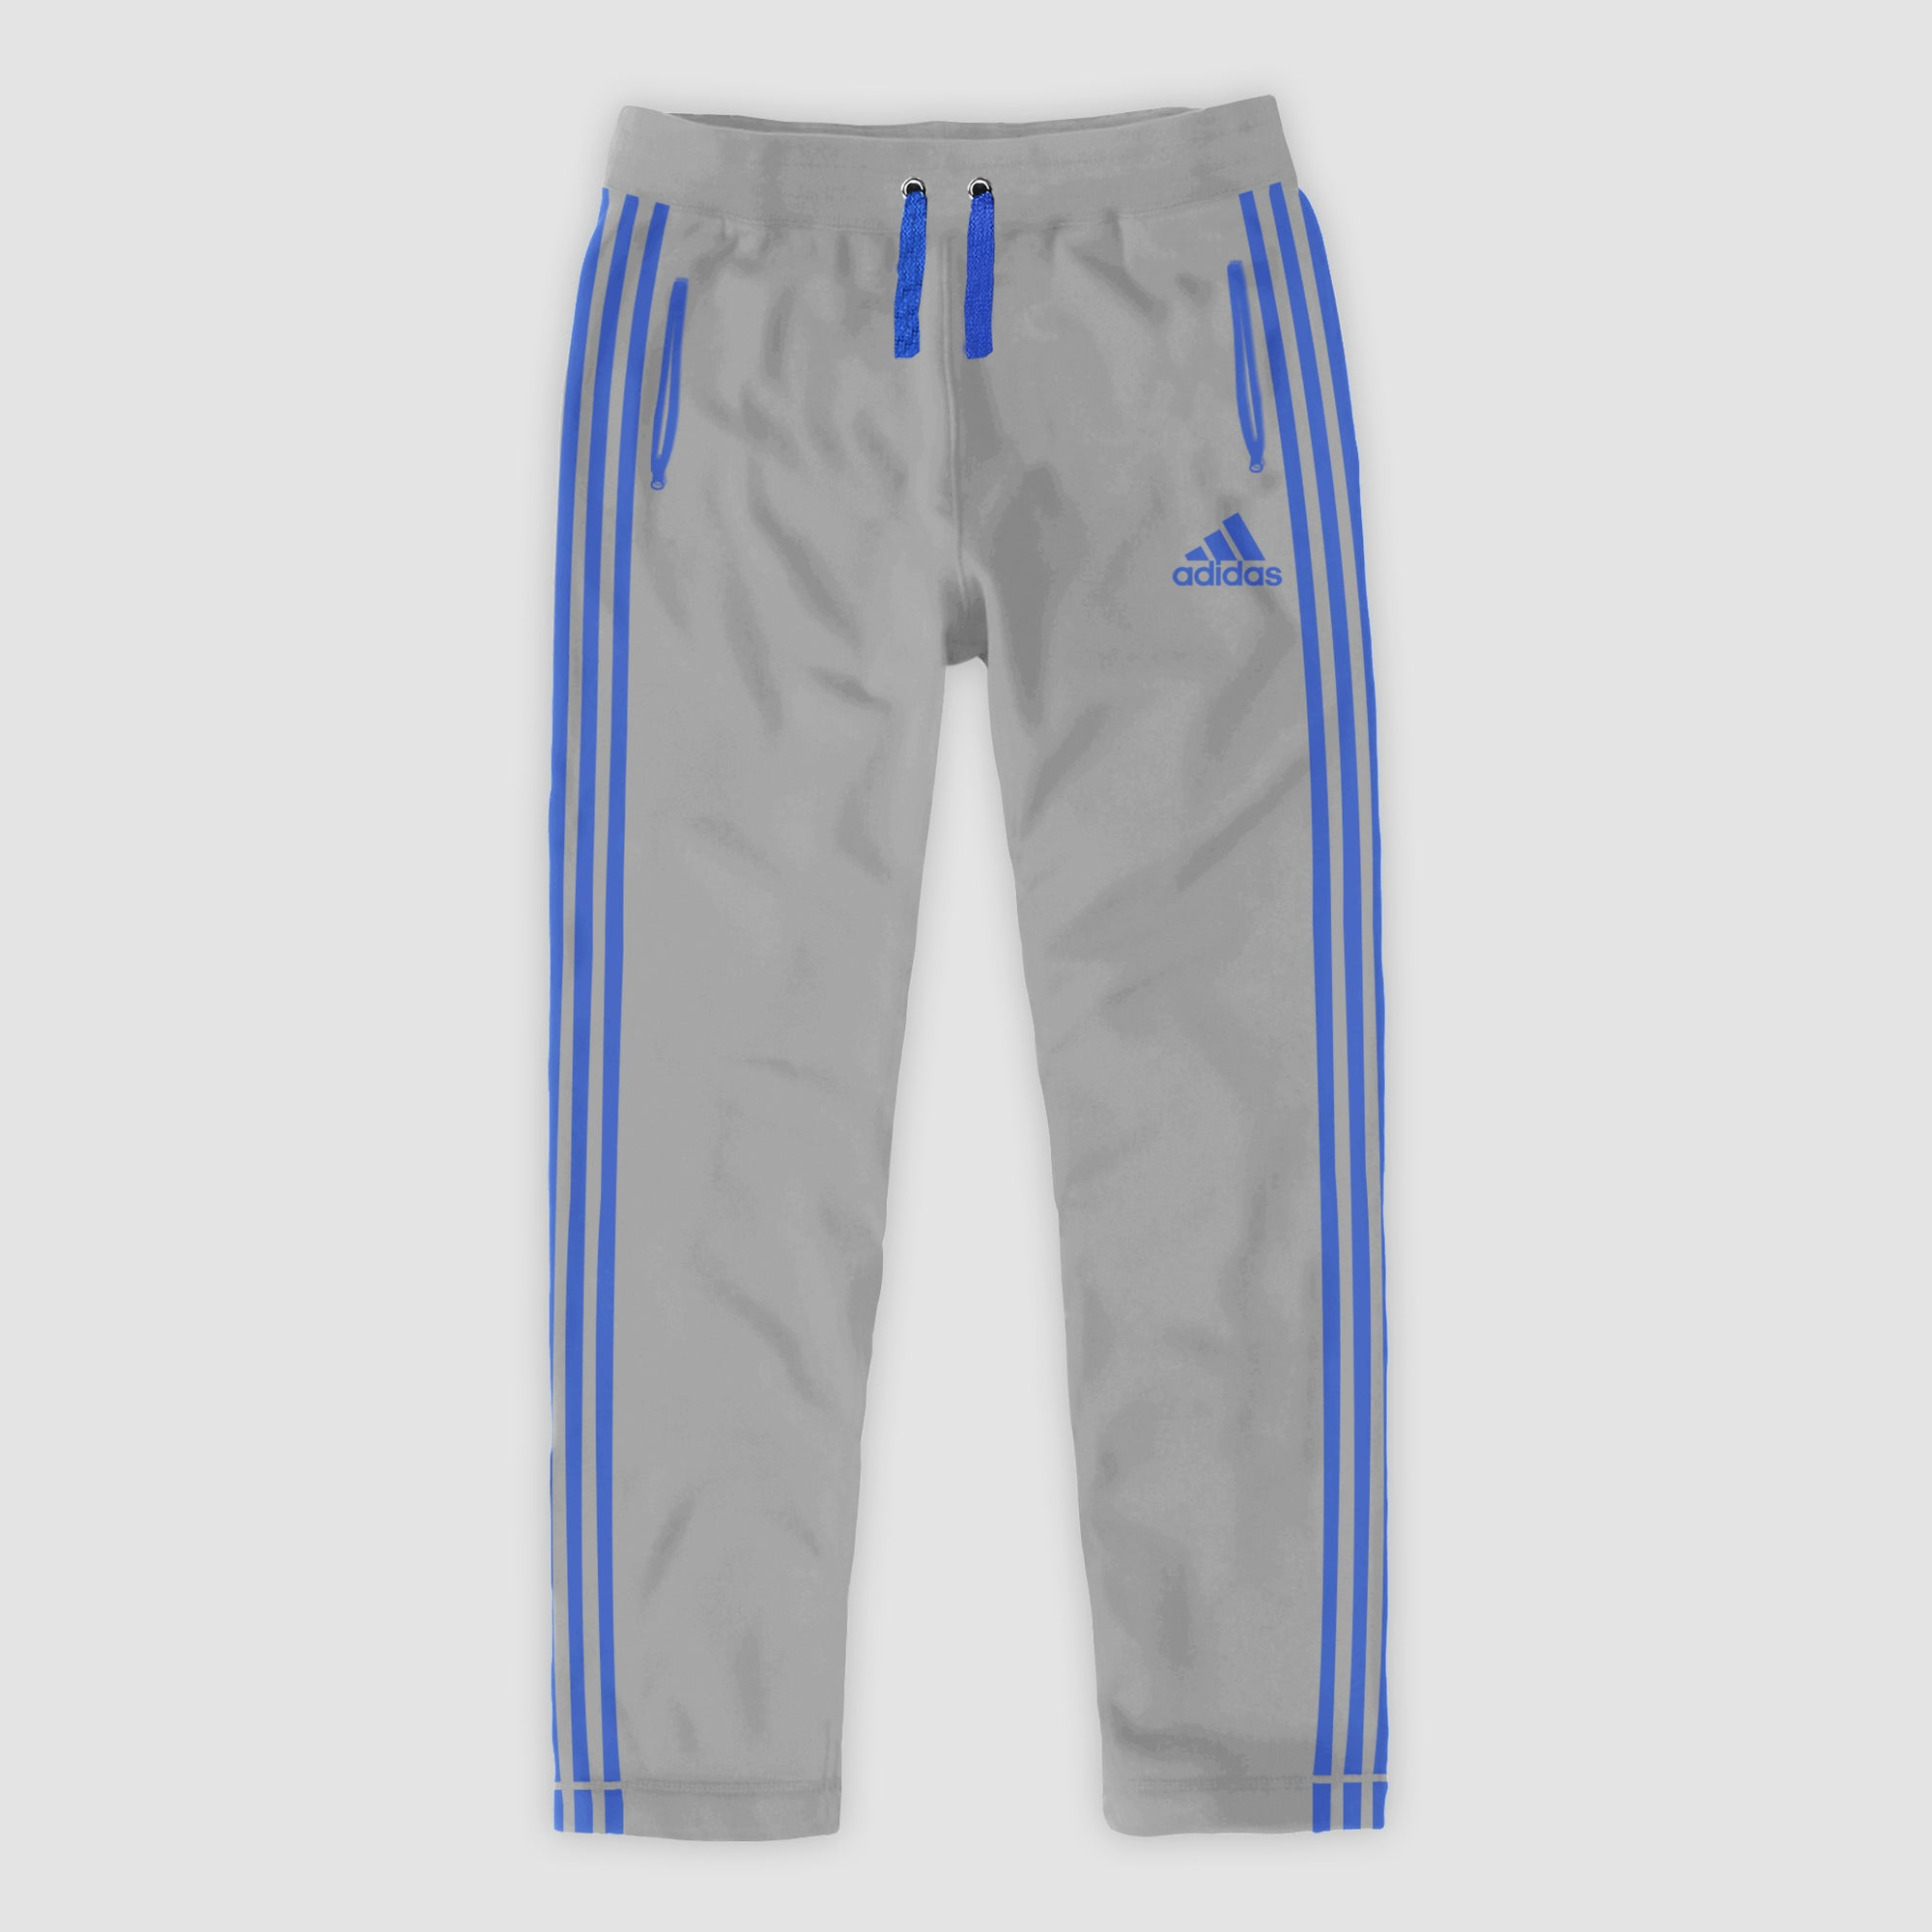 Adidas Single Jersey Regular Fit Trouser For Men-Slate Grey With Blue Stripes-SP459